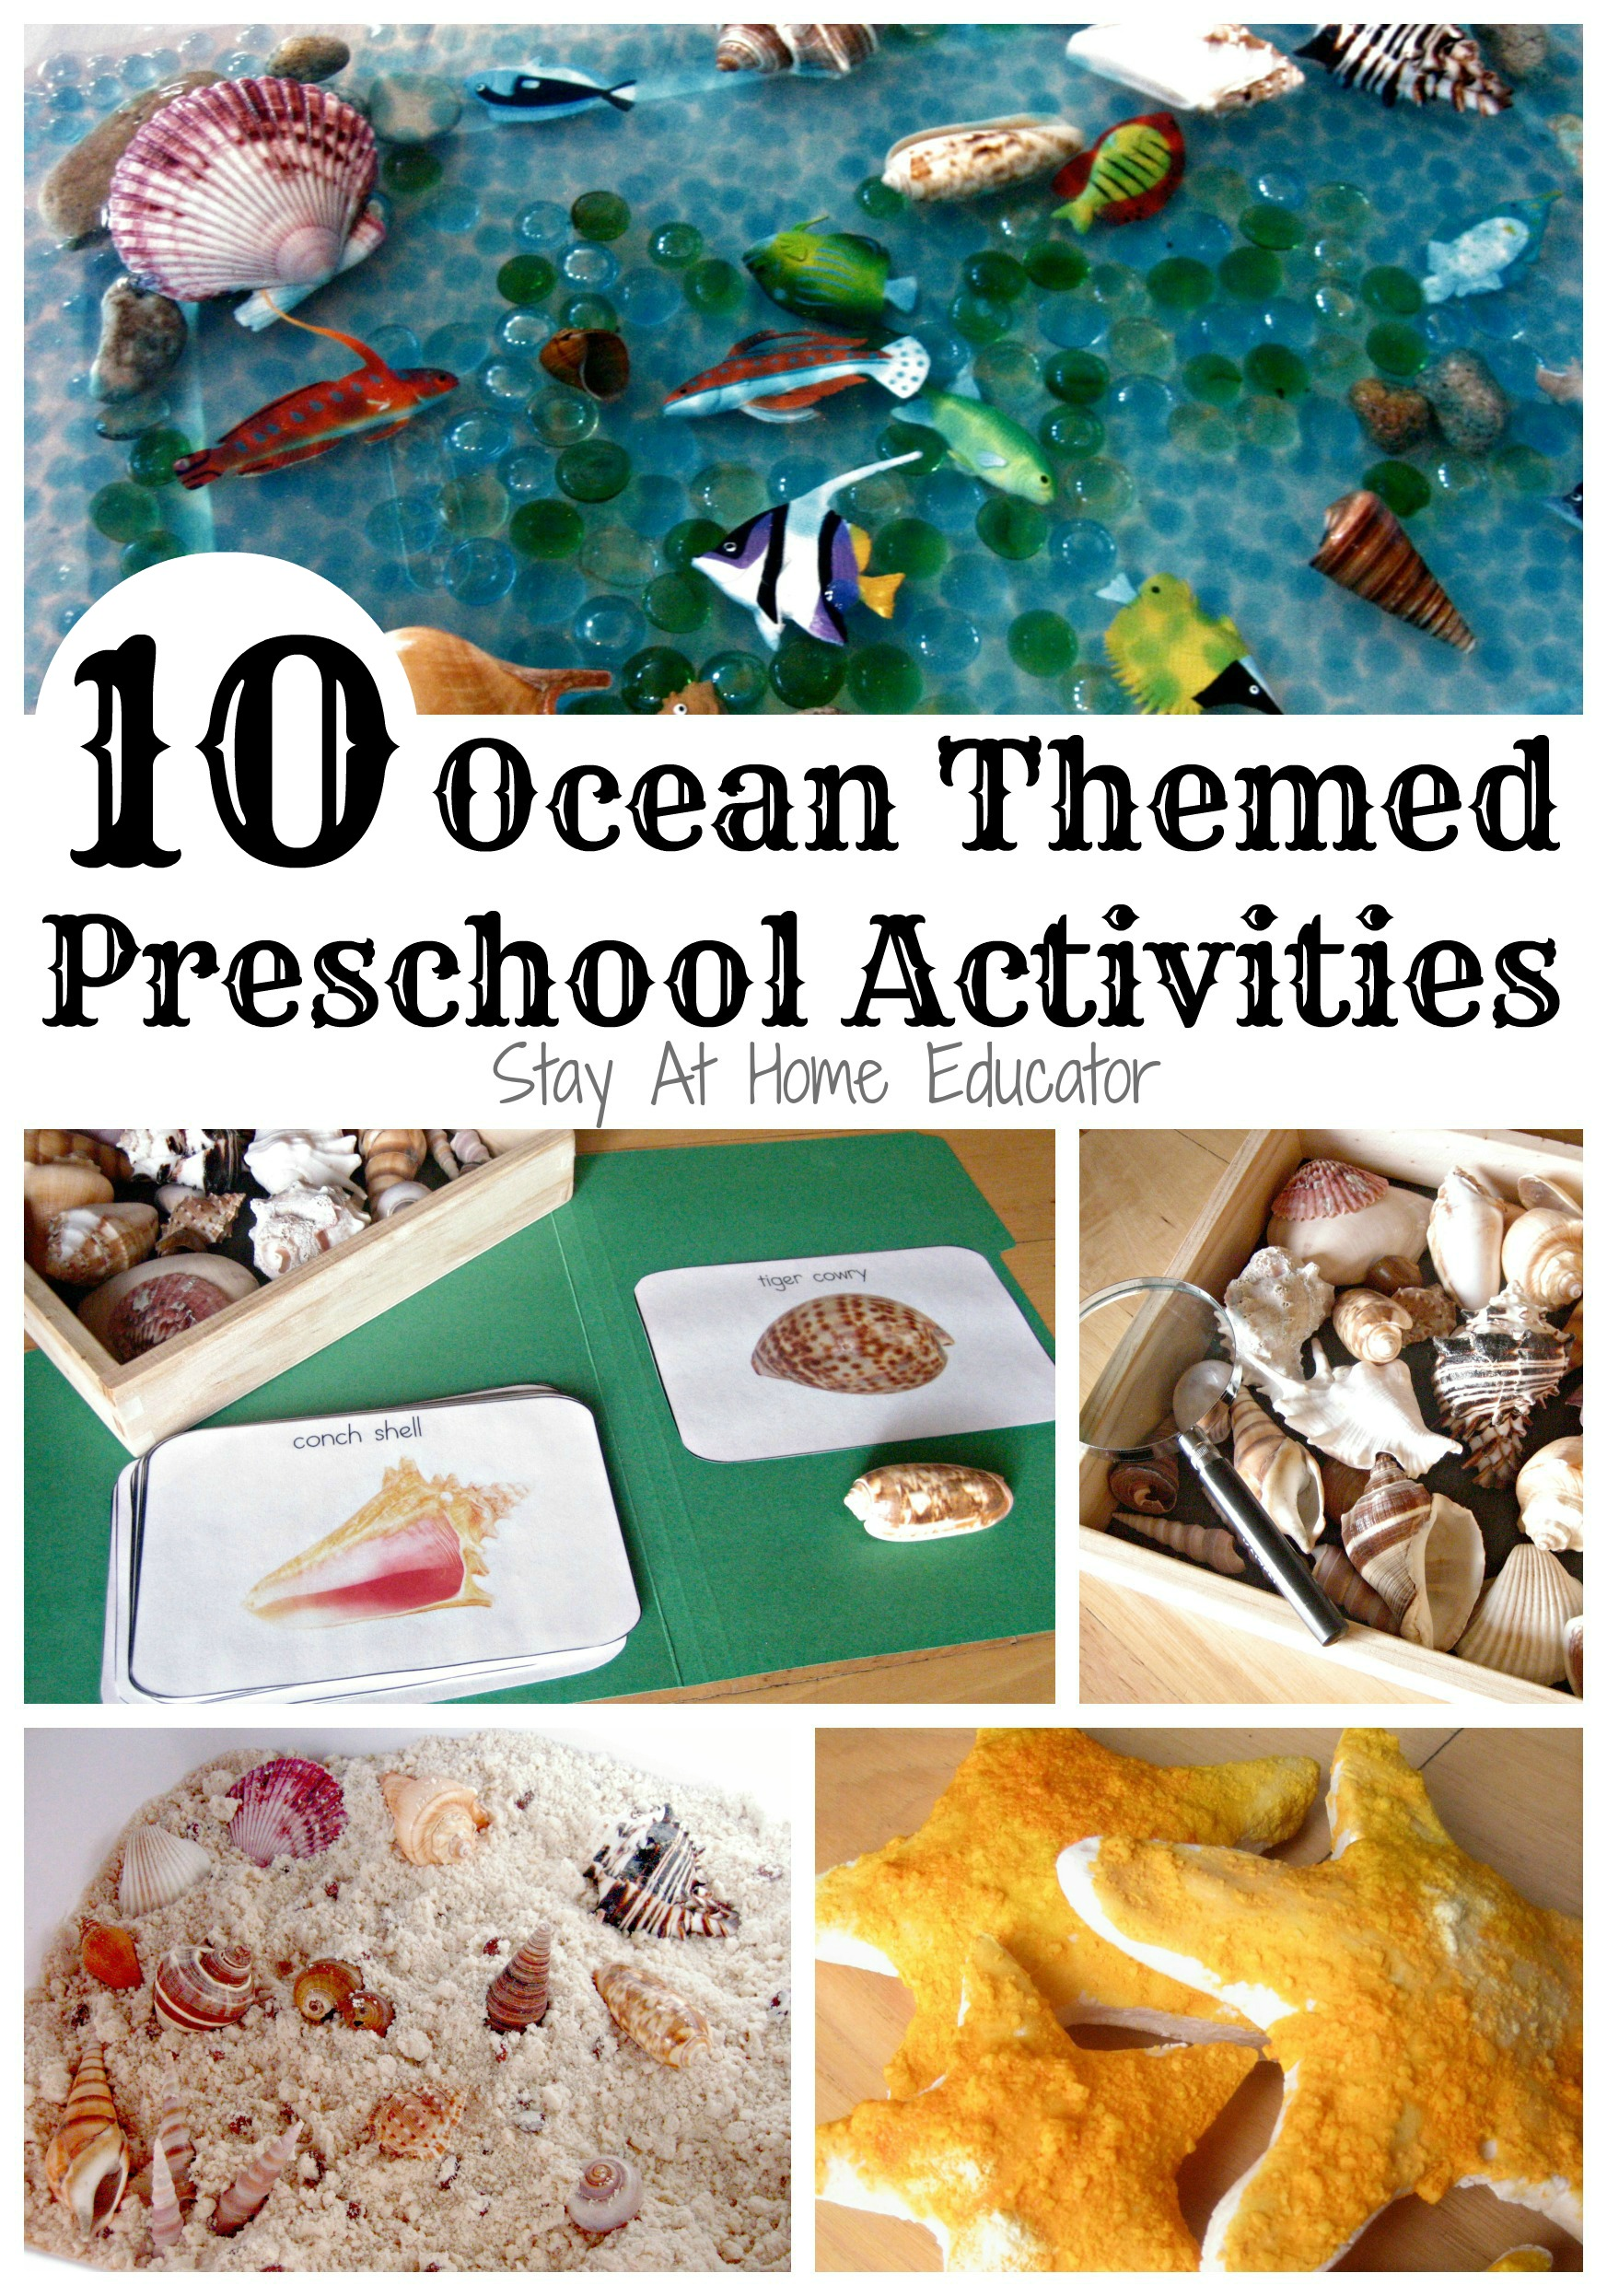 Ocean Themed Preschool Activities